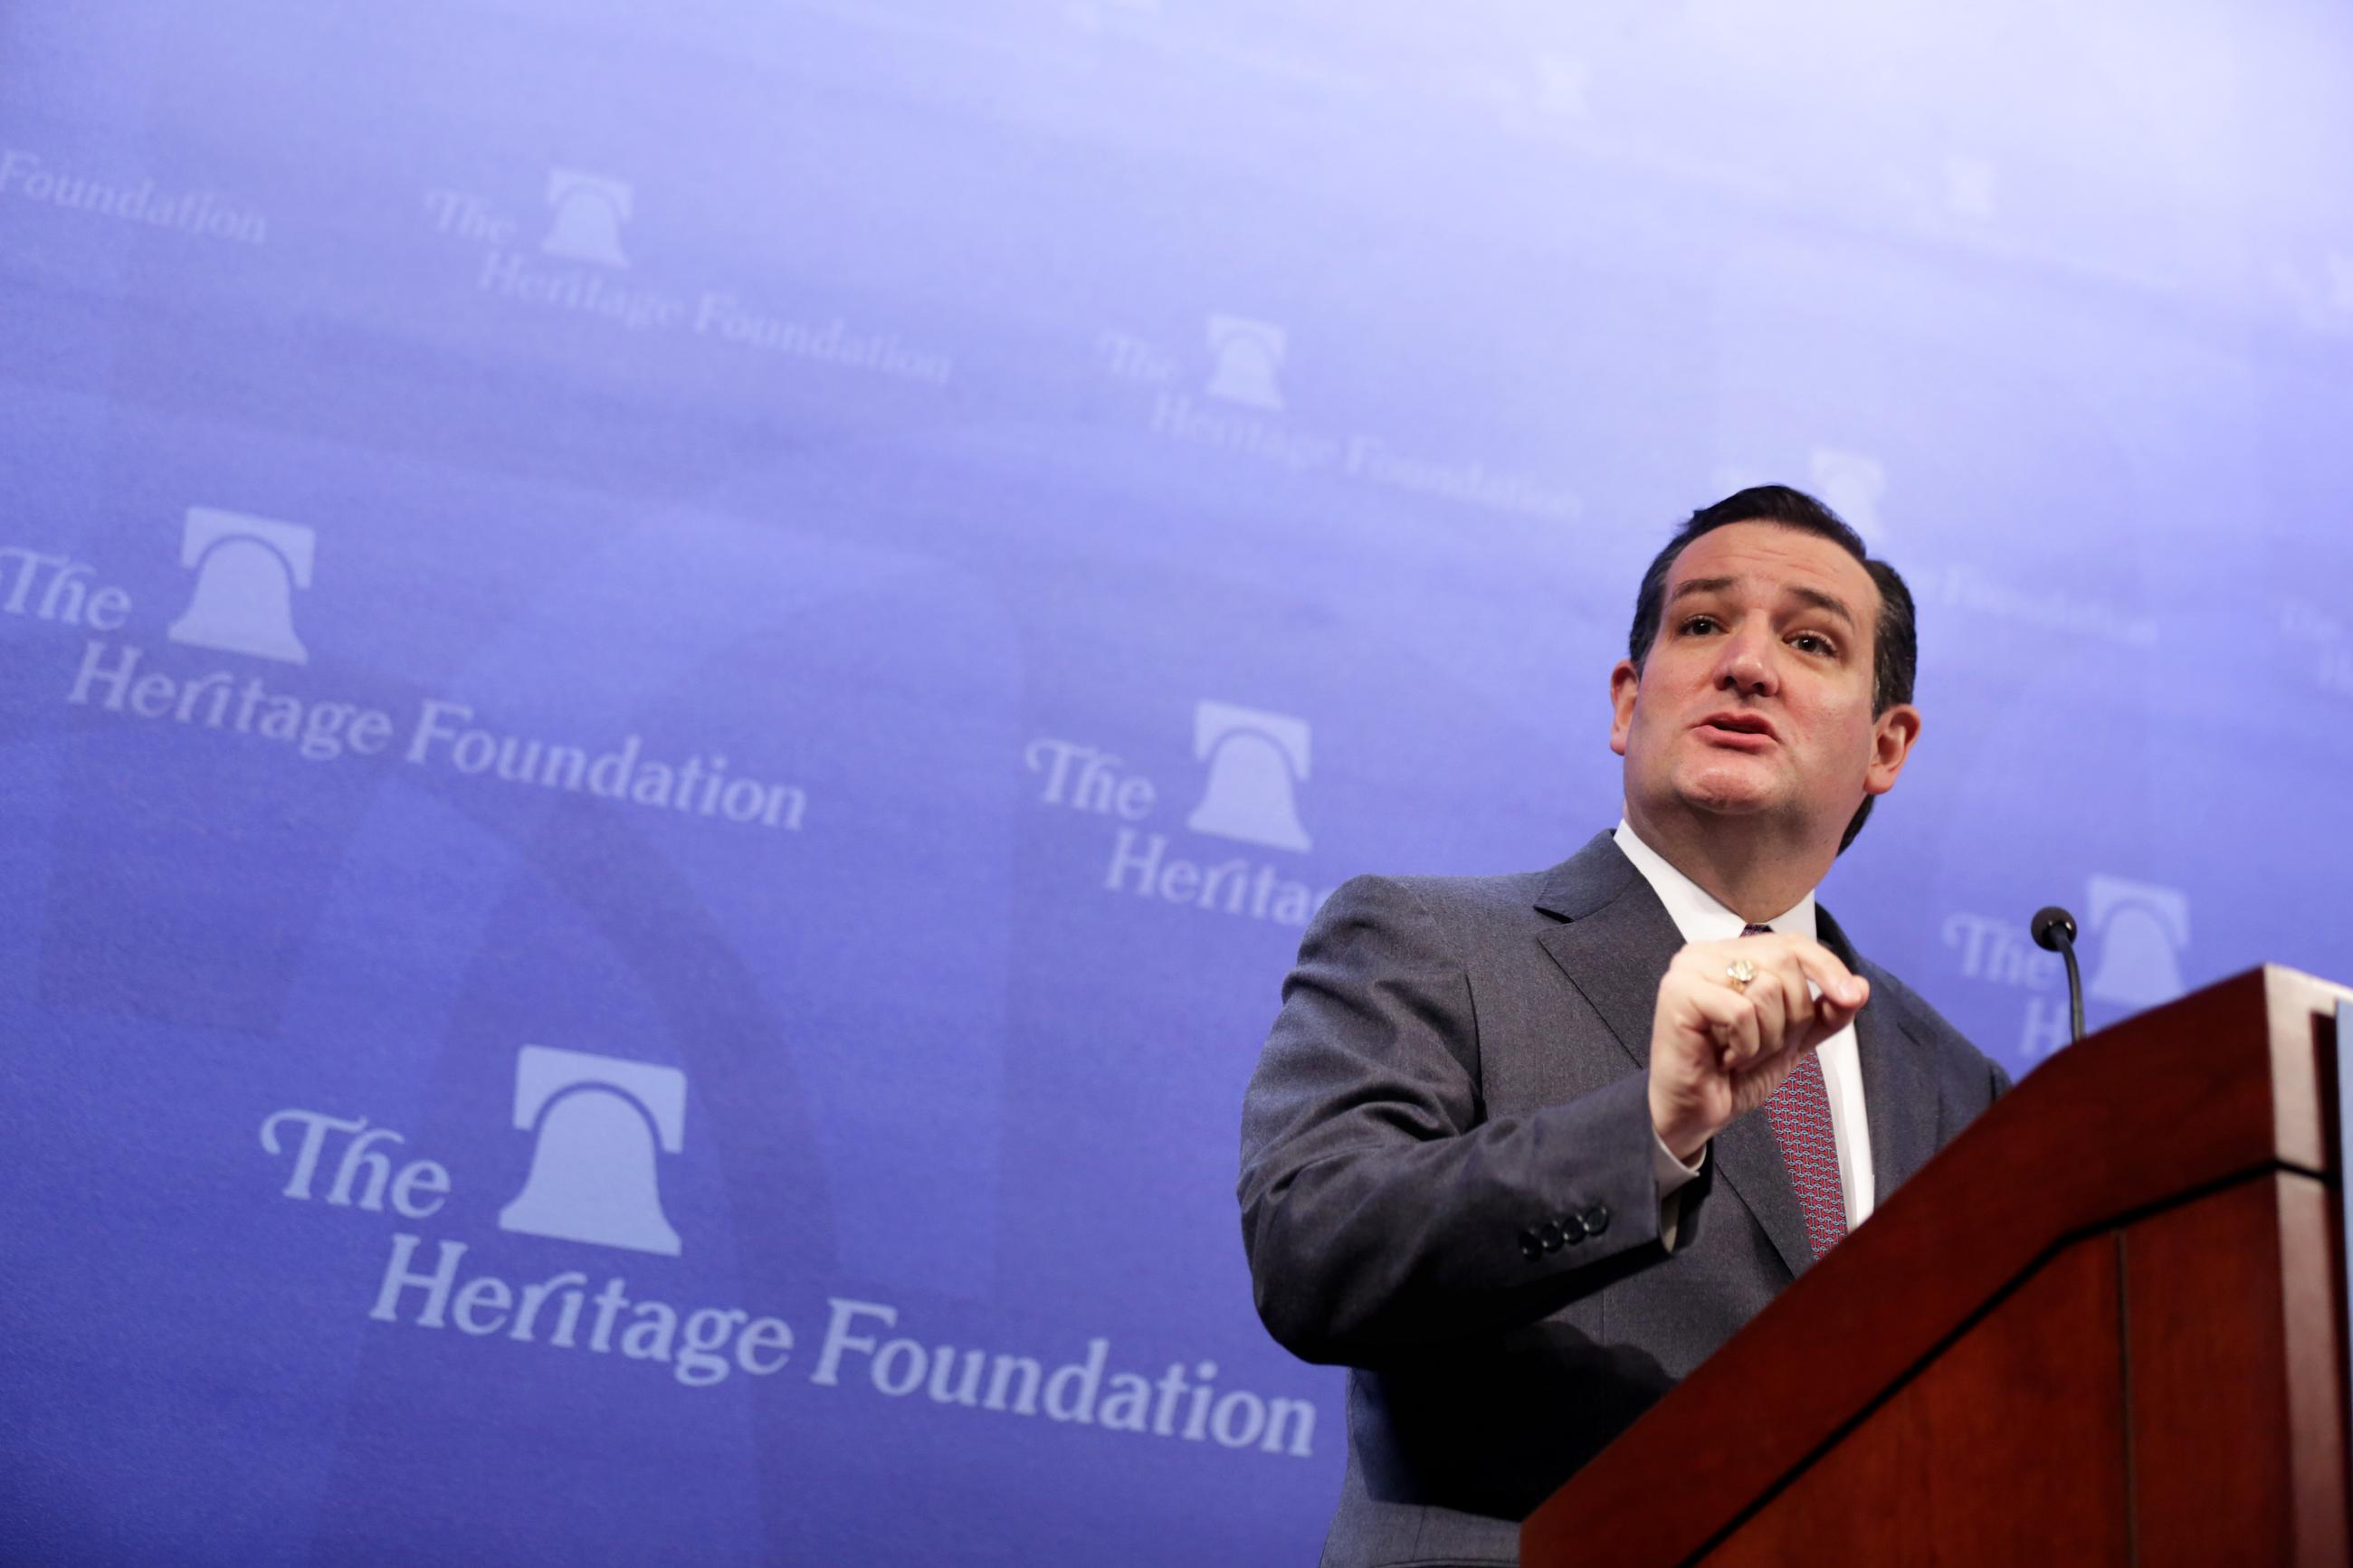 President Obama Just Signed a Ted Cruz Bill Into Law